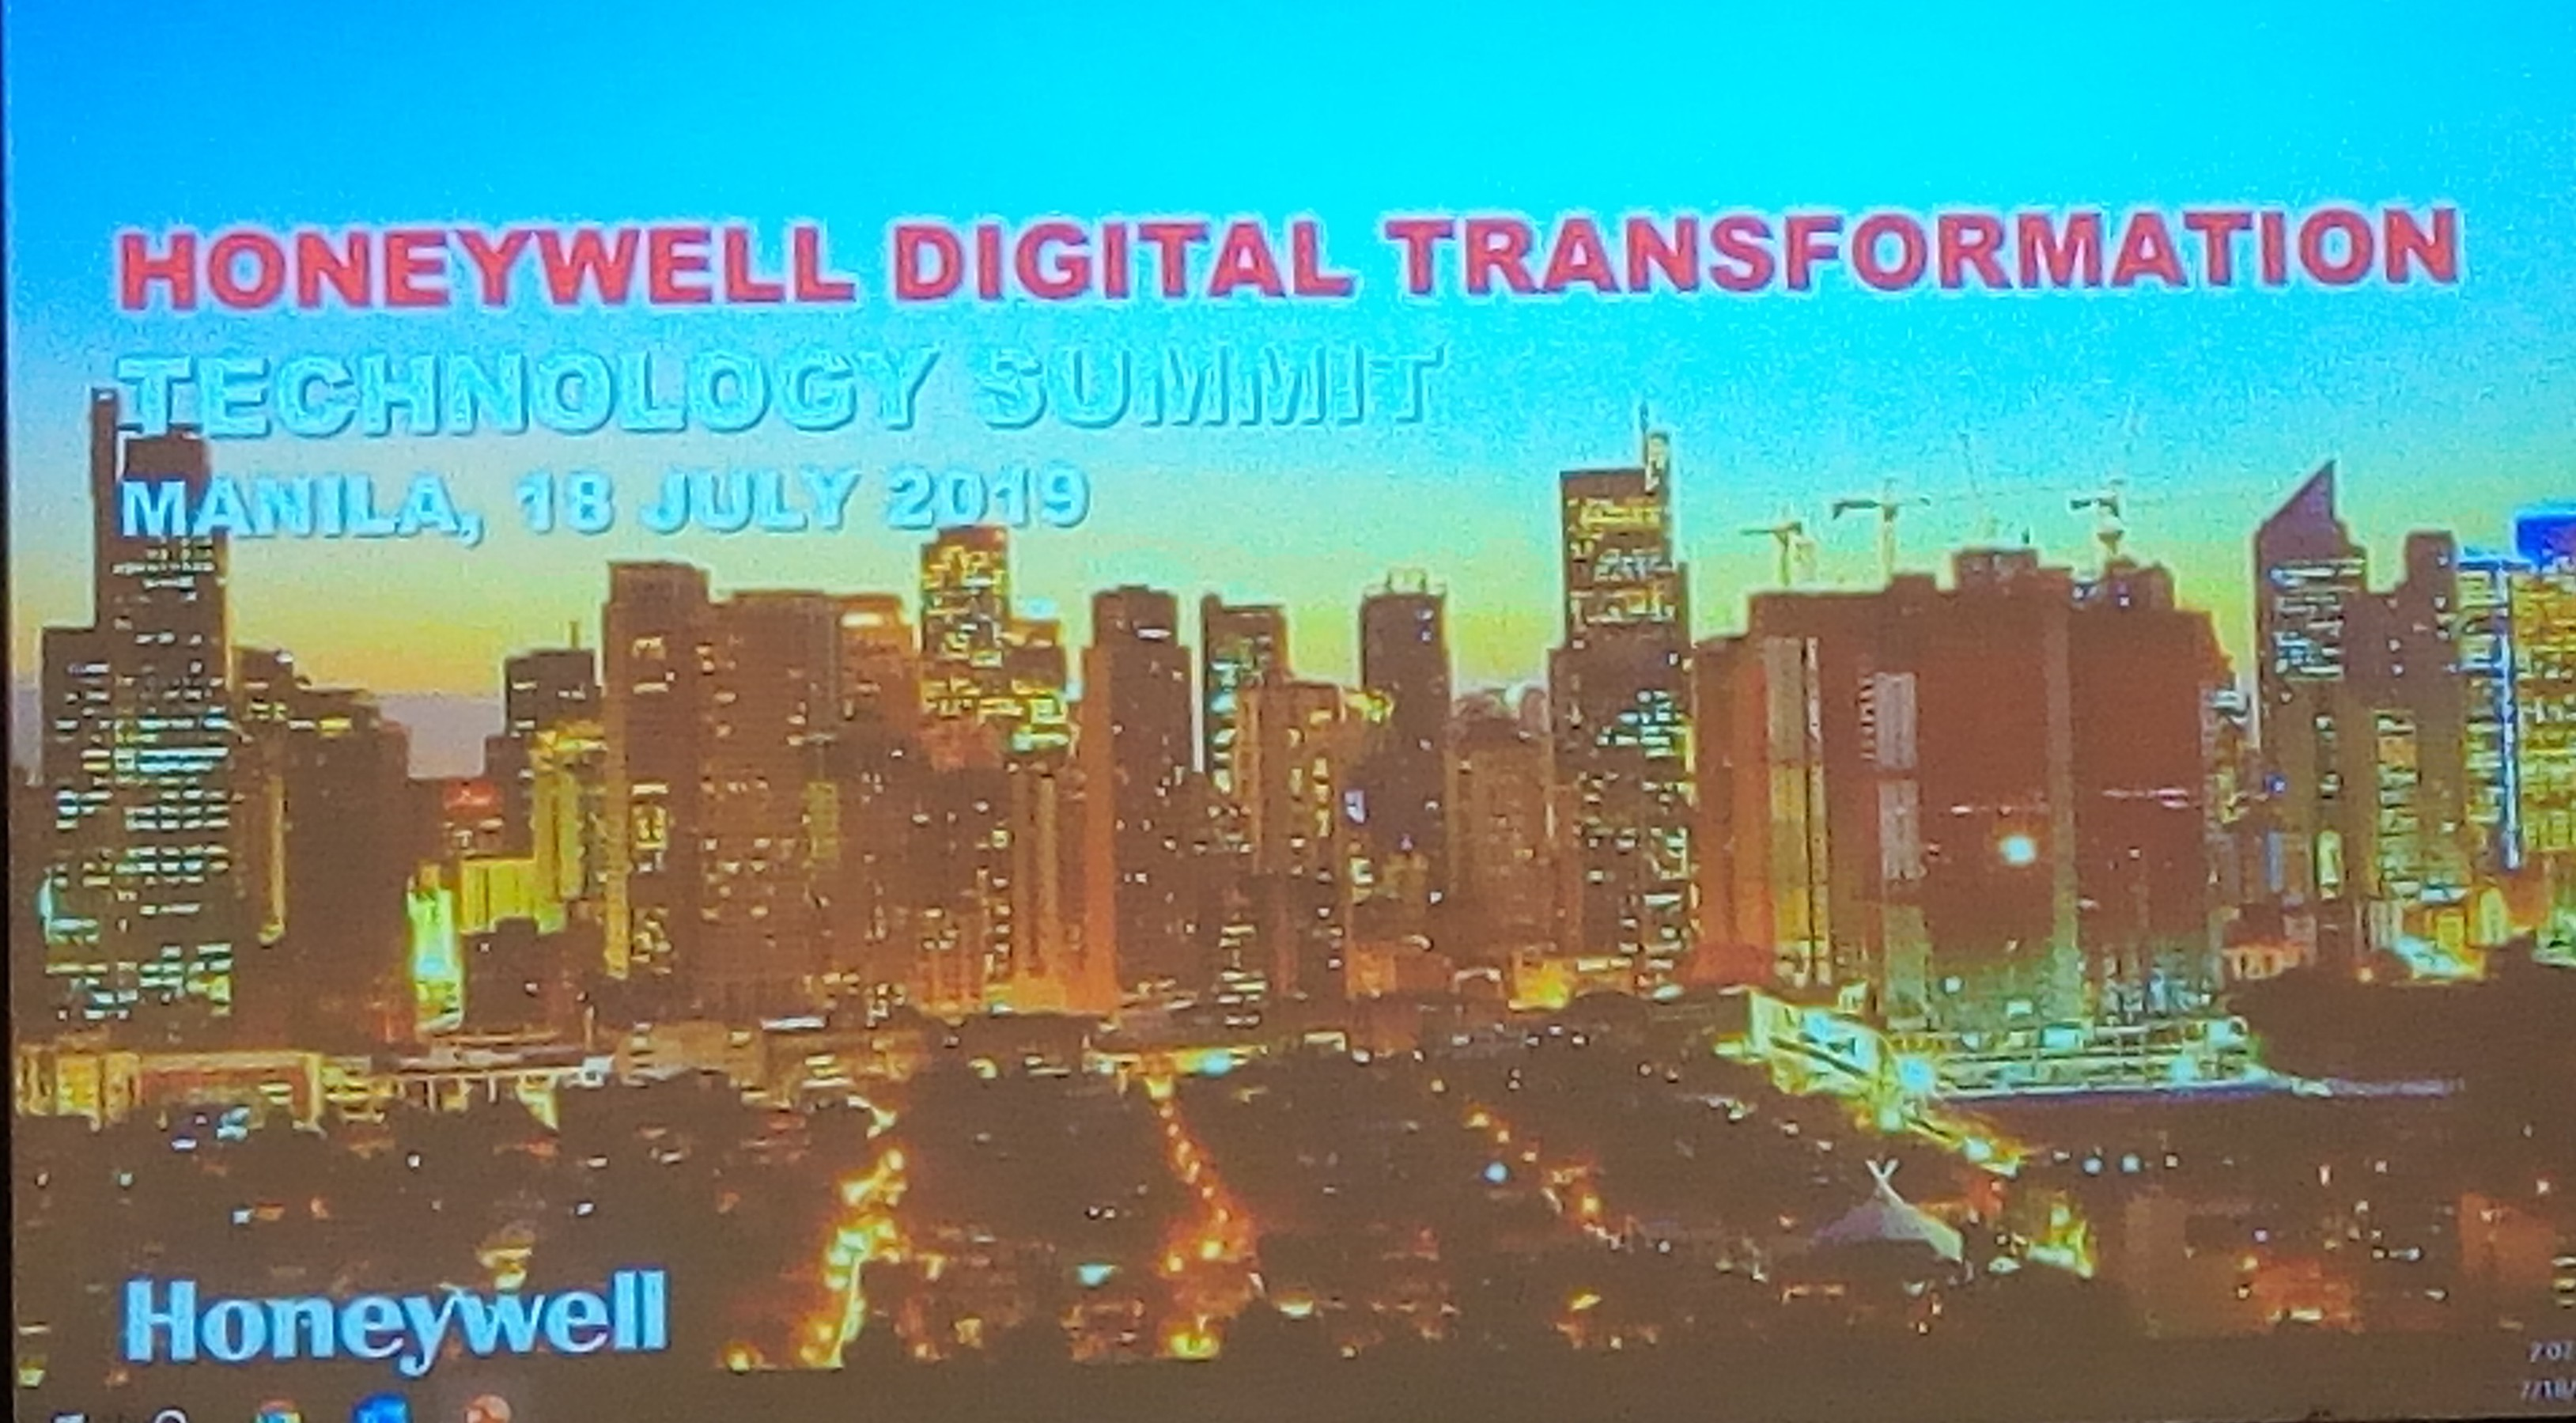 Honeywell Presents Technology that Enables Digital Transformation in PHL